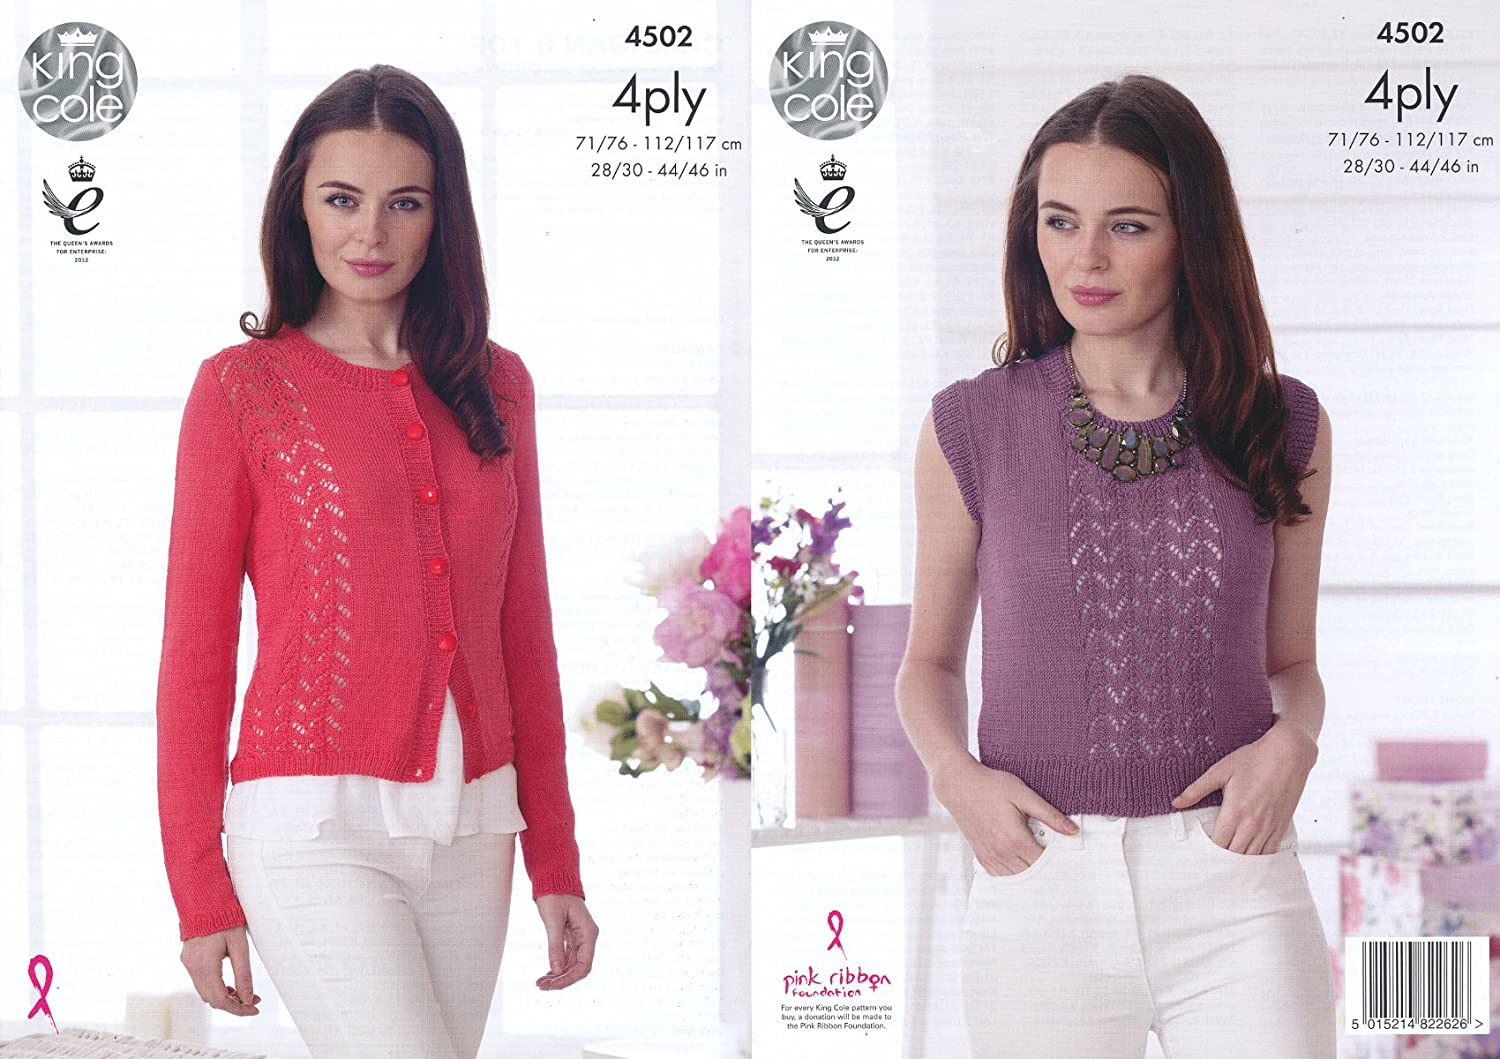 King Cole Ladies 4 Ply Knitting Pattern Womens Lace Effect